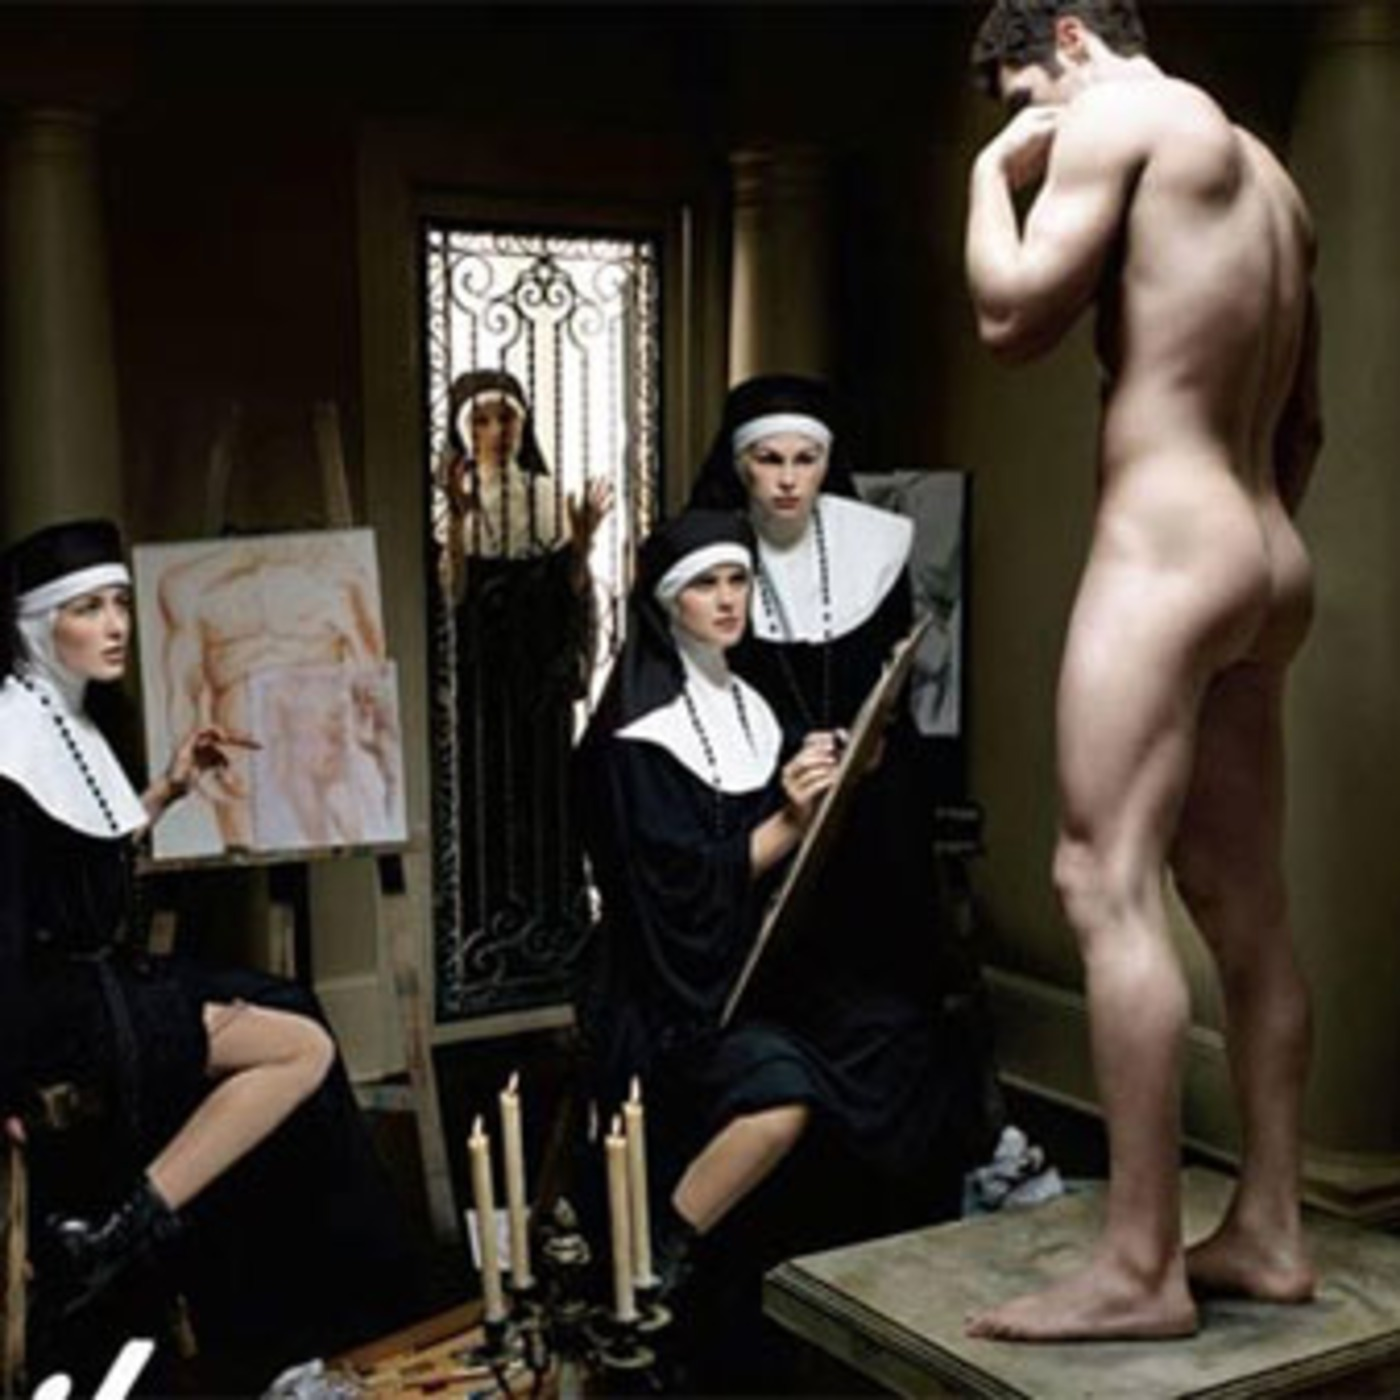 Nuns sex photos sex video